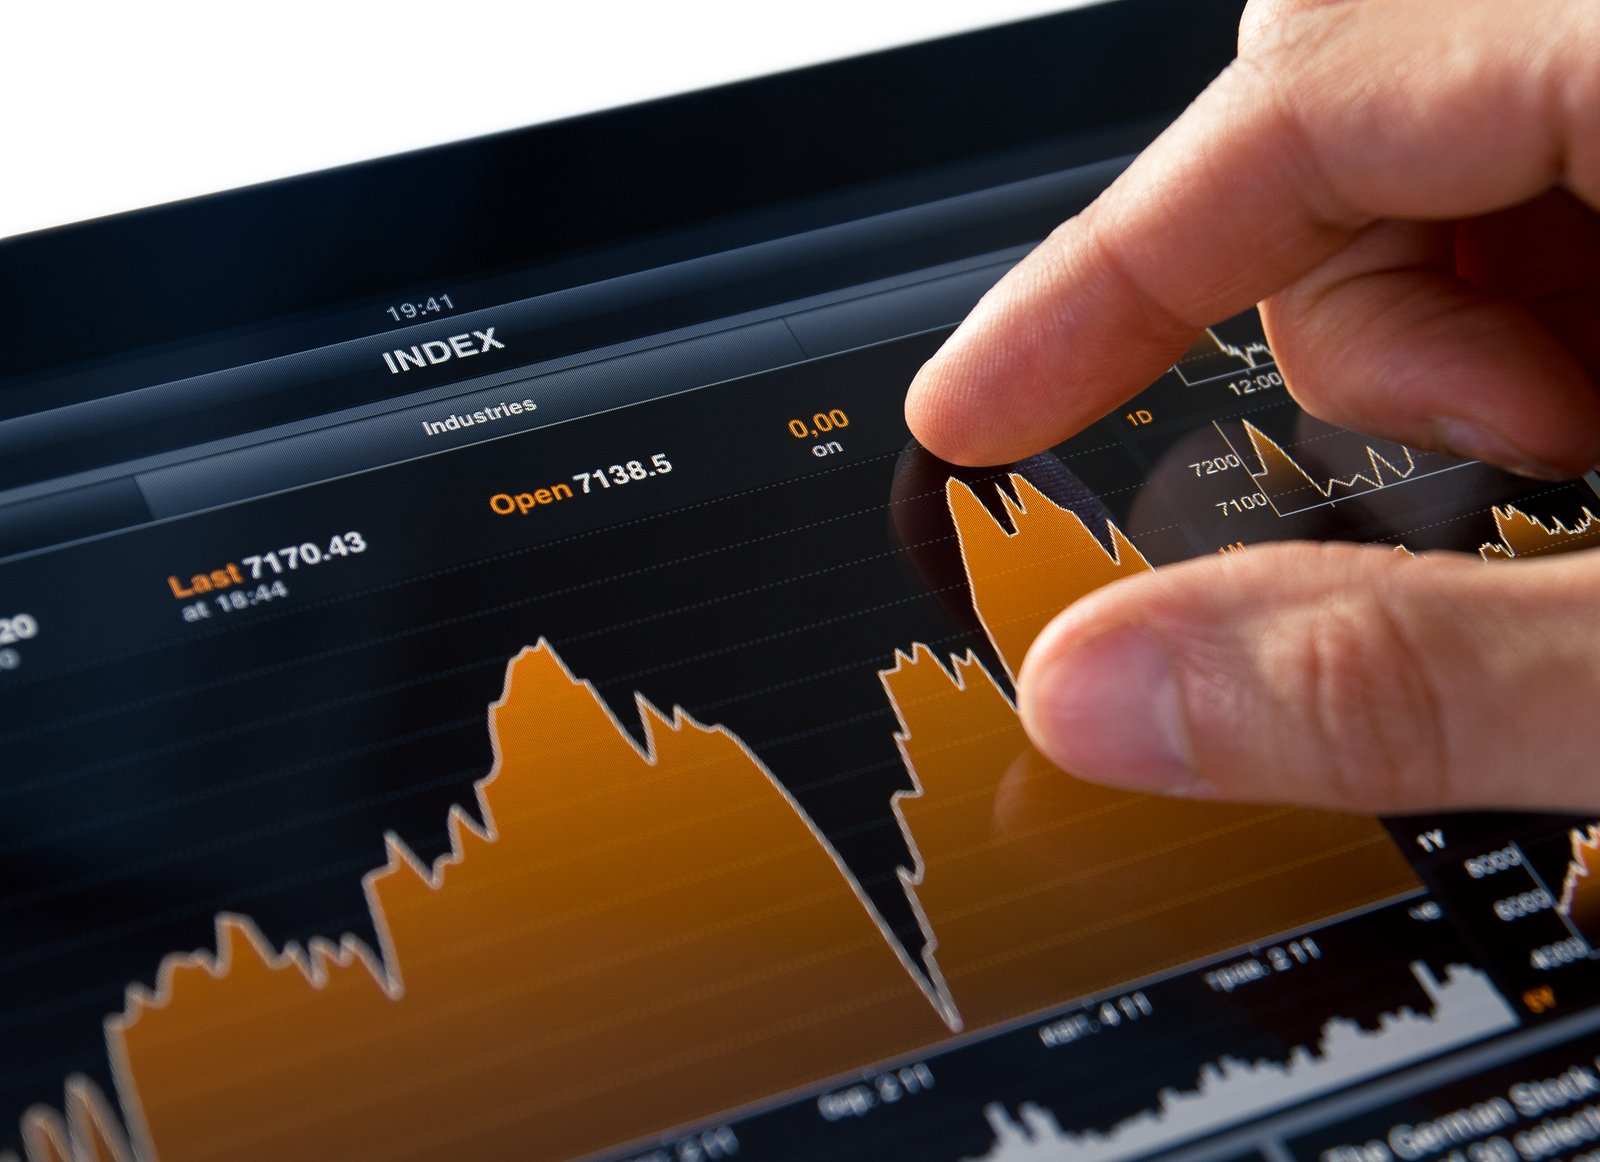 Analyzing stock market graph on a touch screen device.